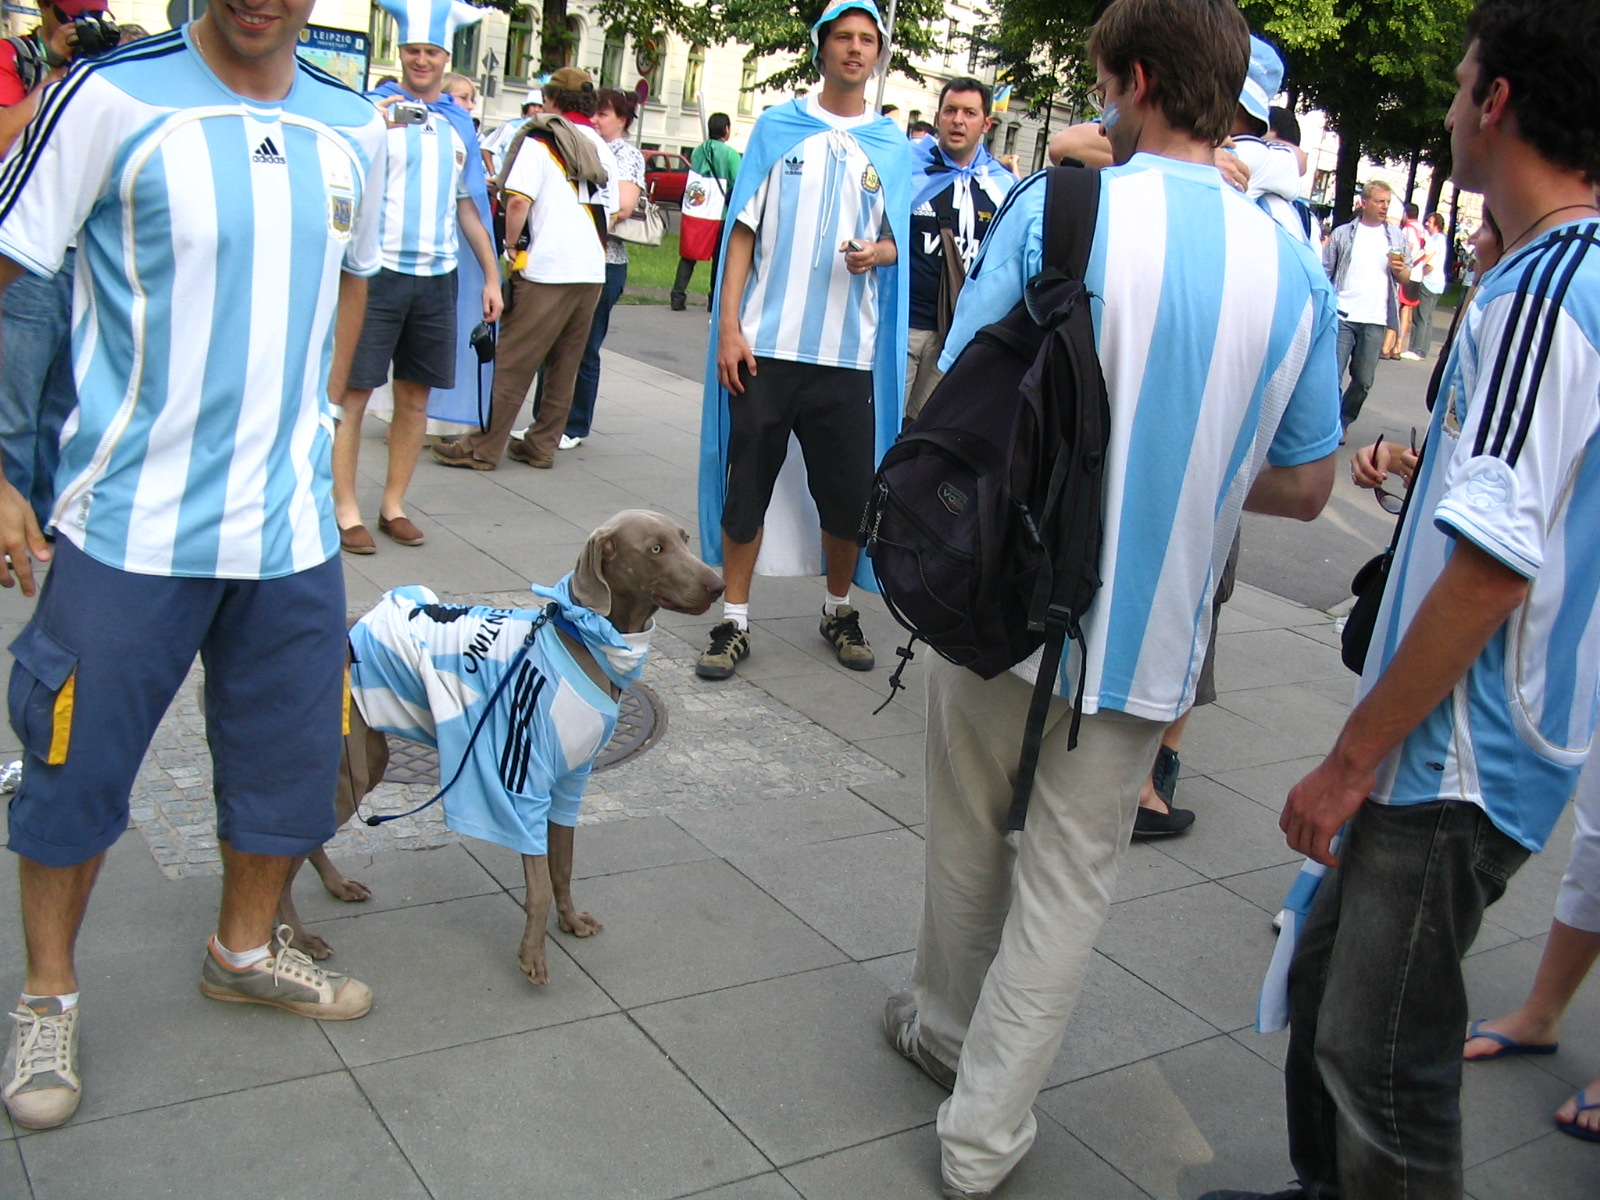 The scene at the 2006 World Cup in Germany